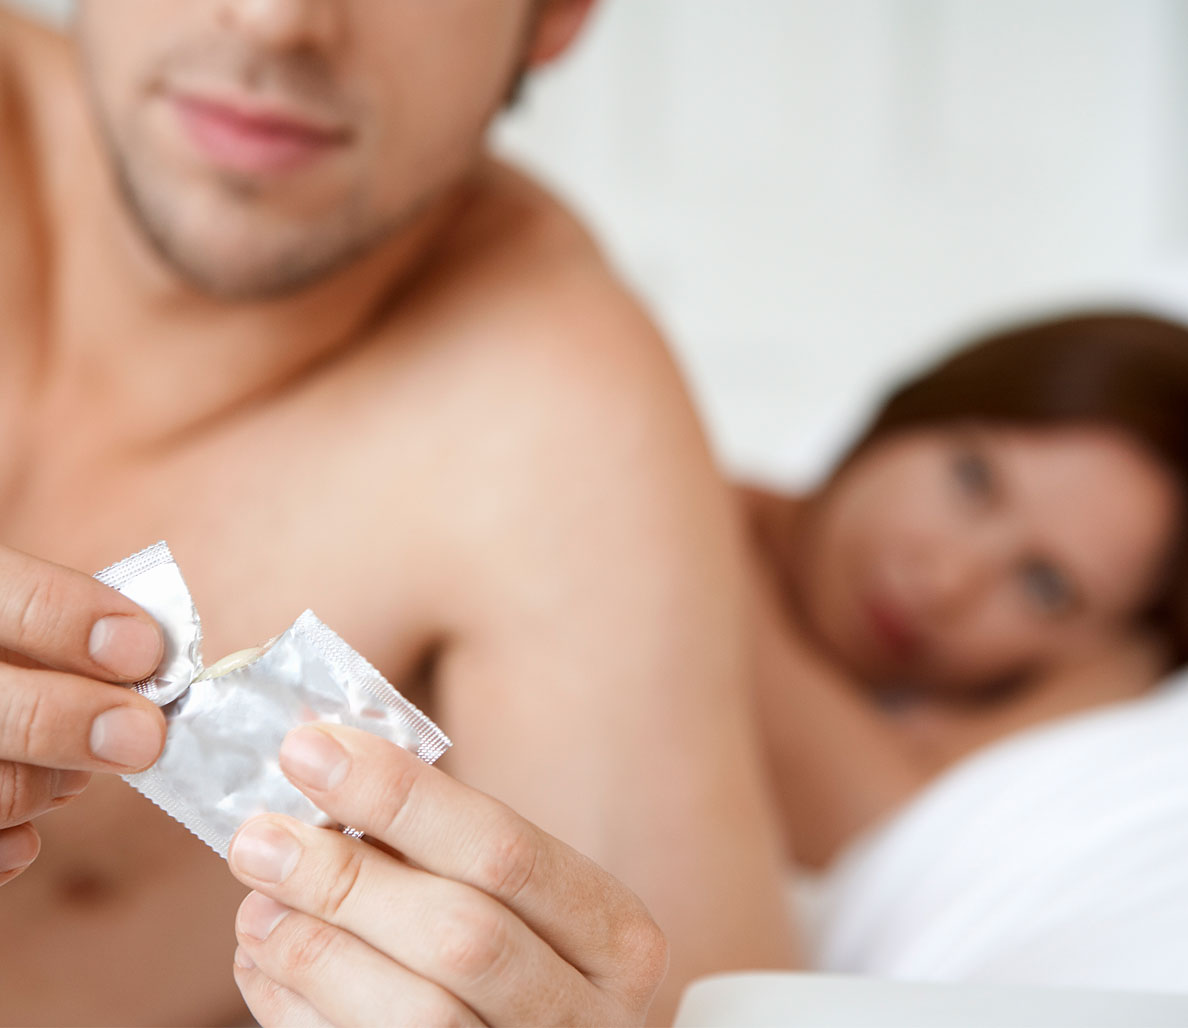 Teen Sex Myths On Pulling Out Method And Birth Control